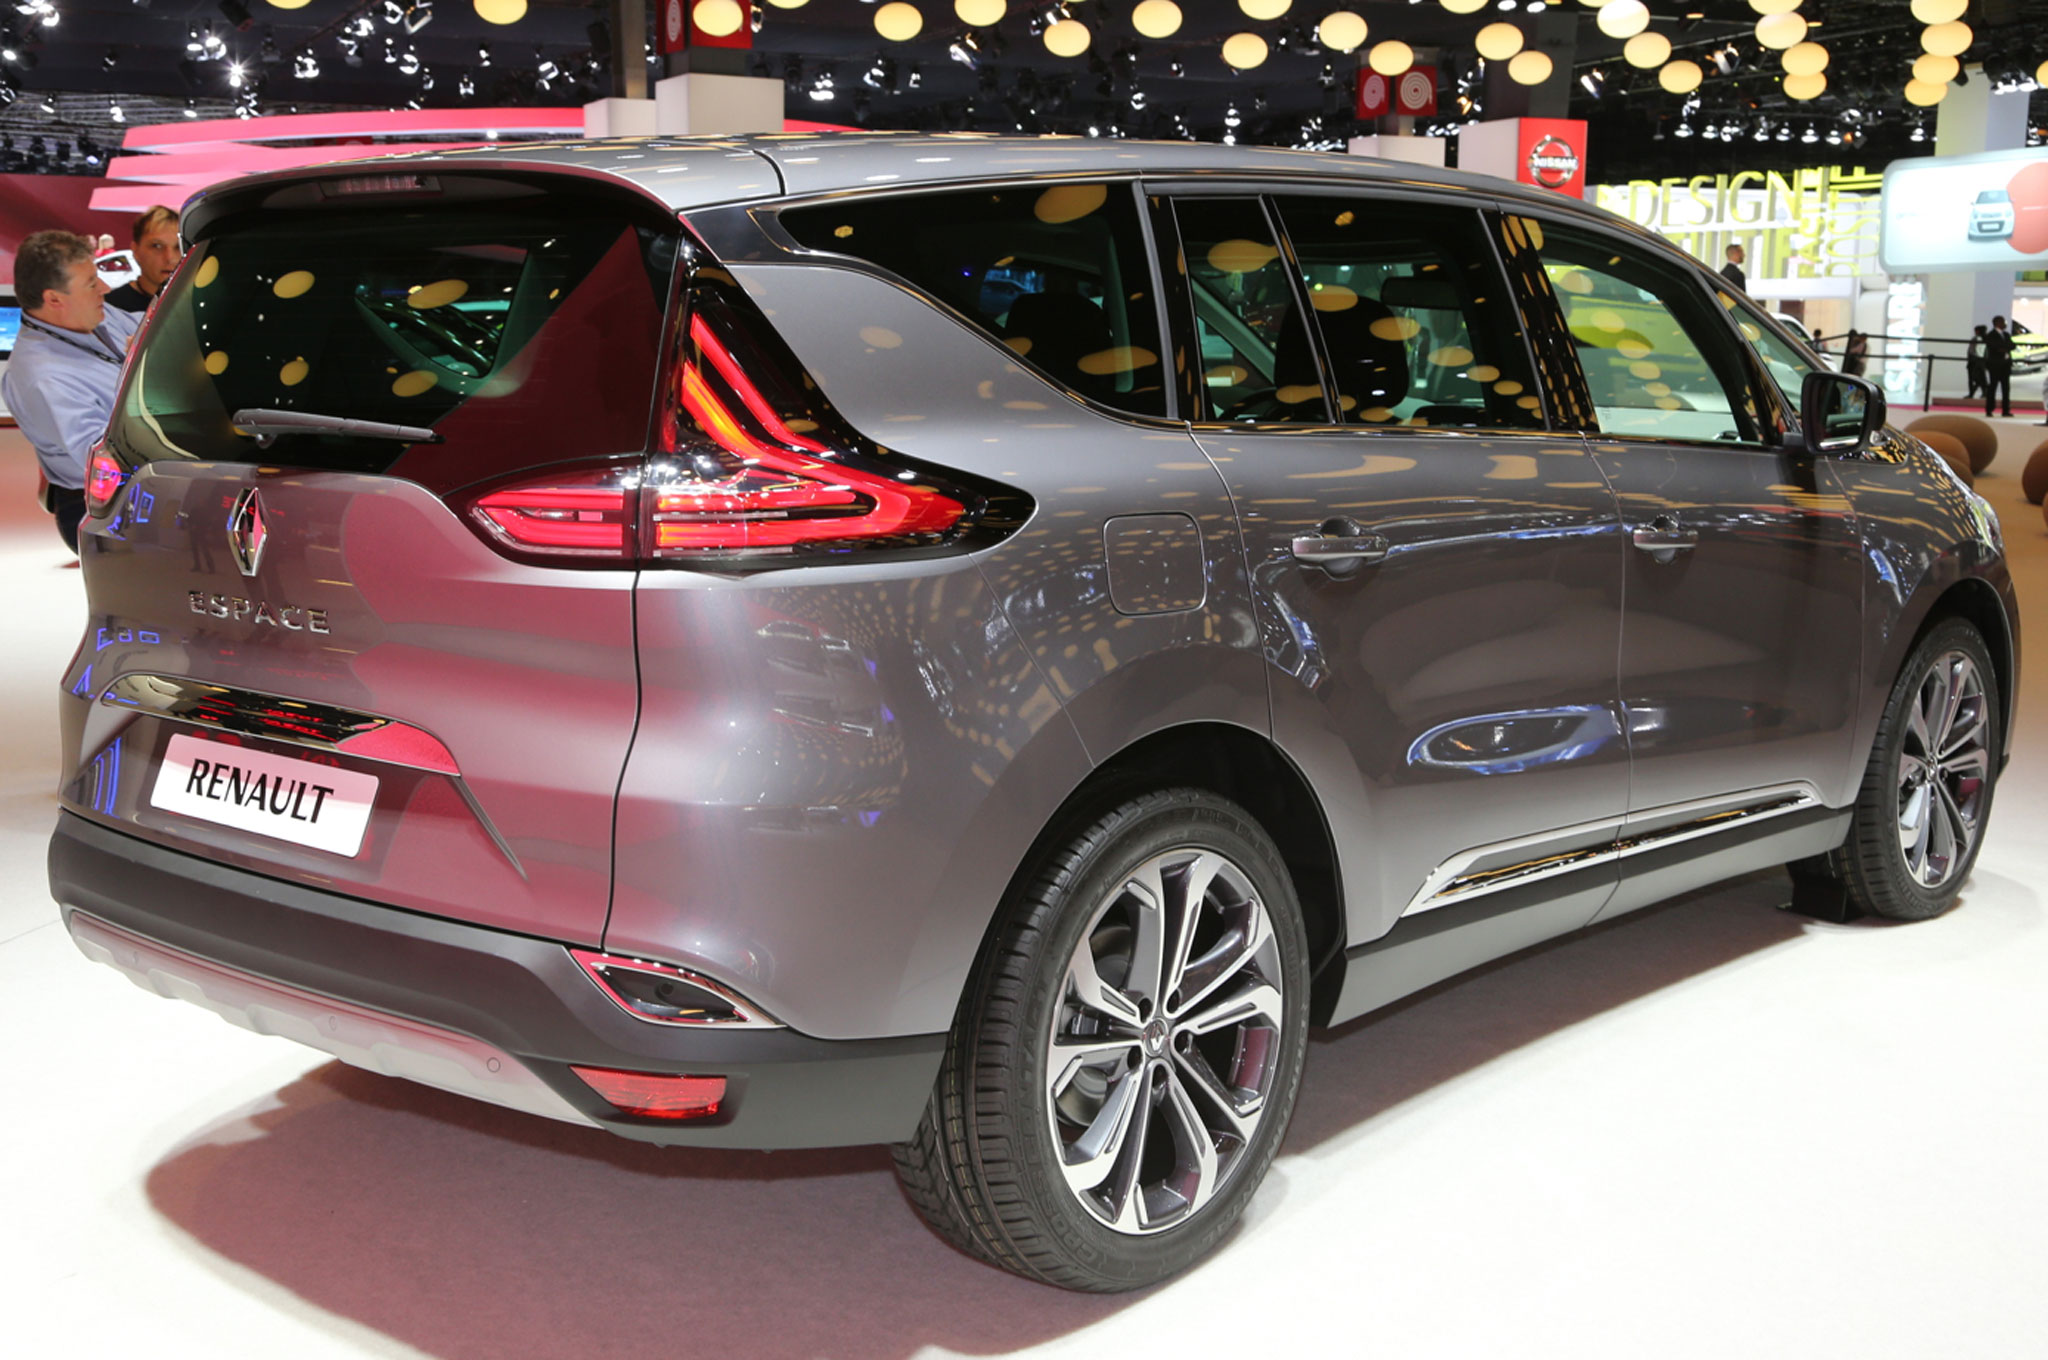 renault shows off production ready espace crossover in paris. Black Bedroom Furniture Sets. Home Design Ideas